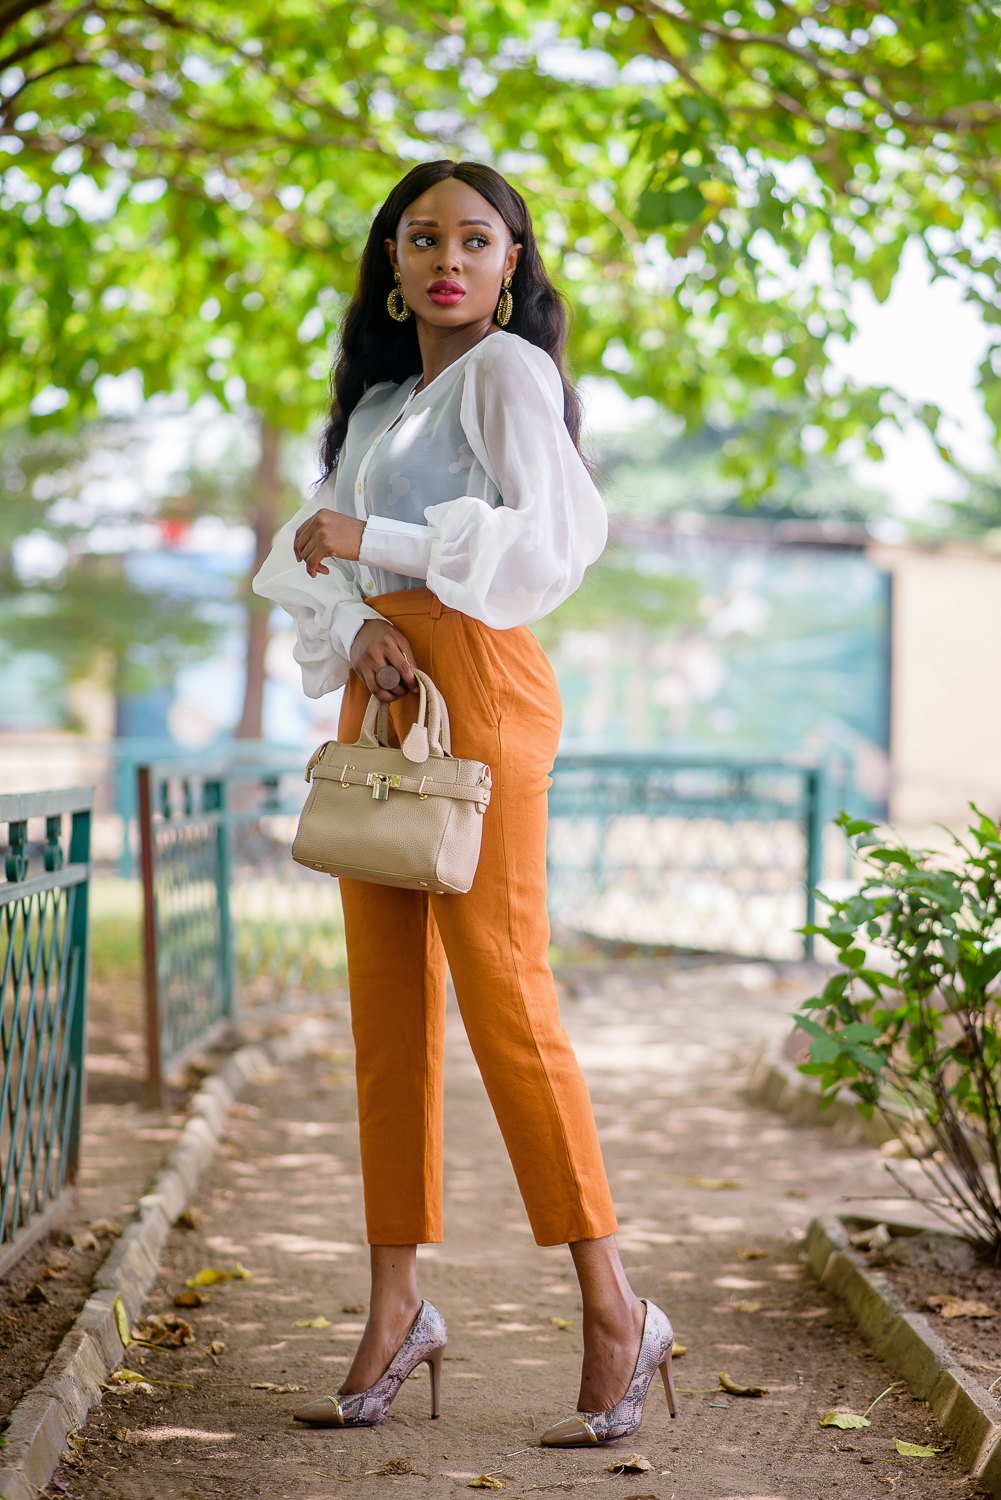 How to style the unconventional white top